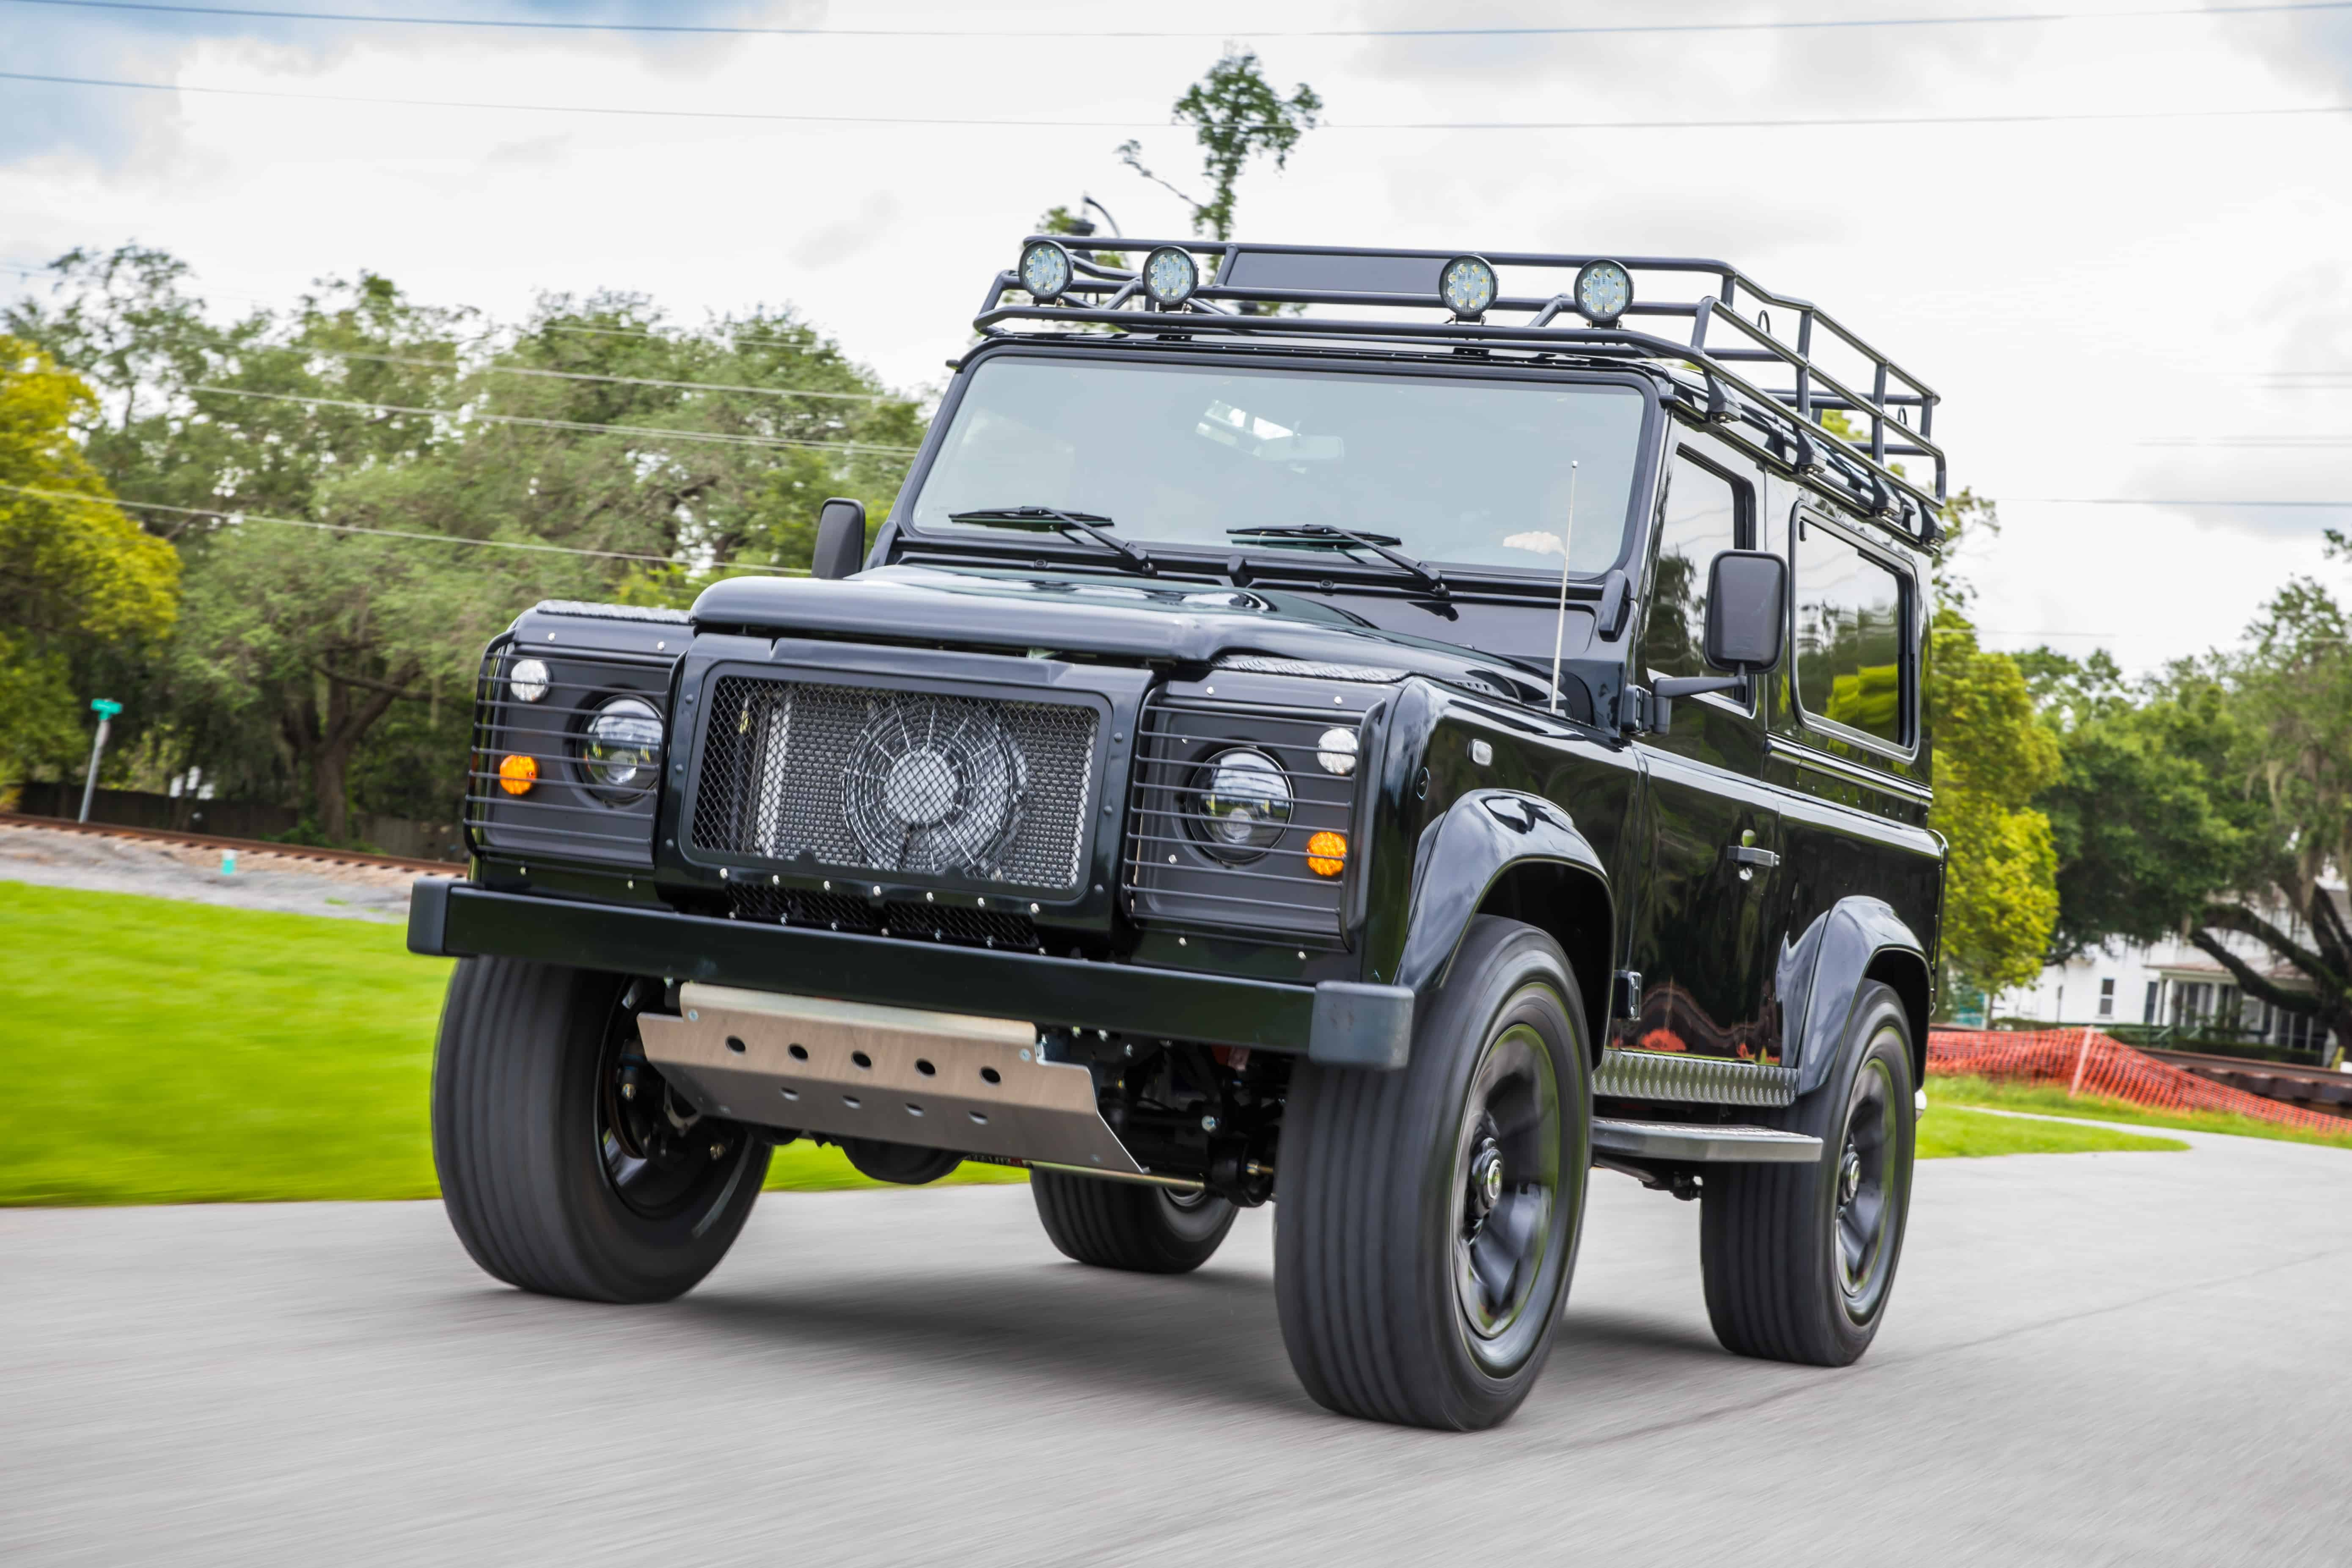 East Coast Defender Project Blackout Is Awesomely Murdered Out